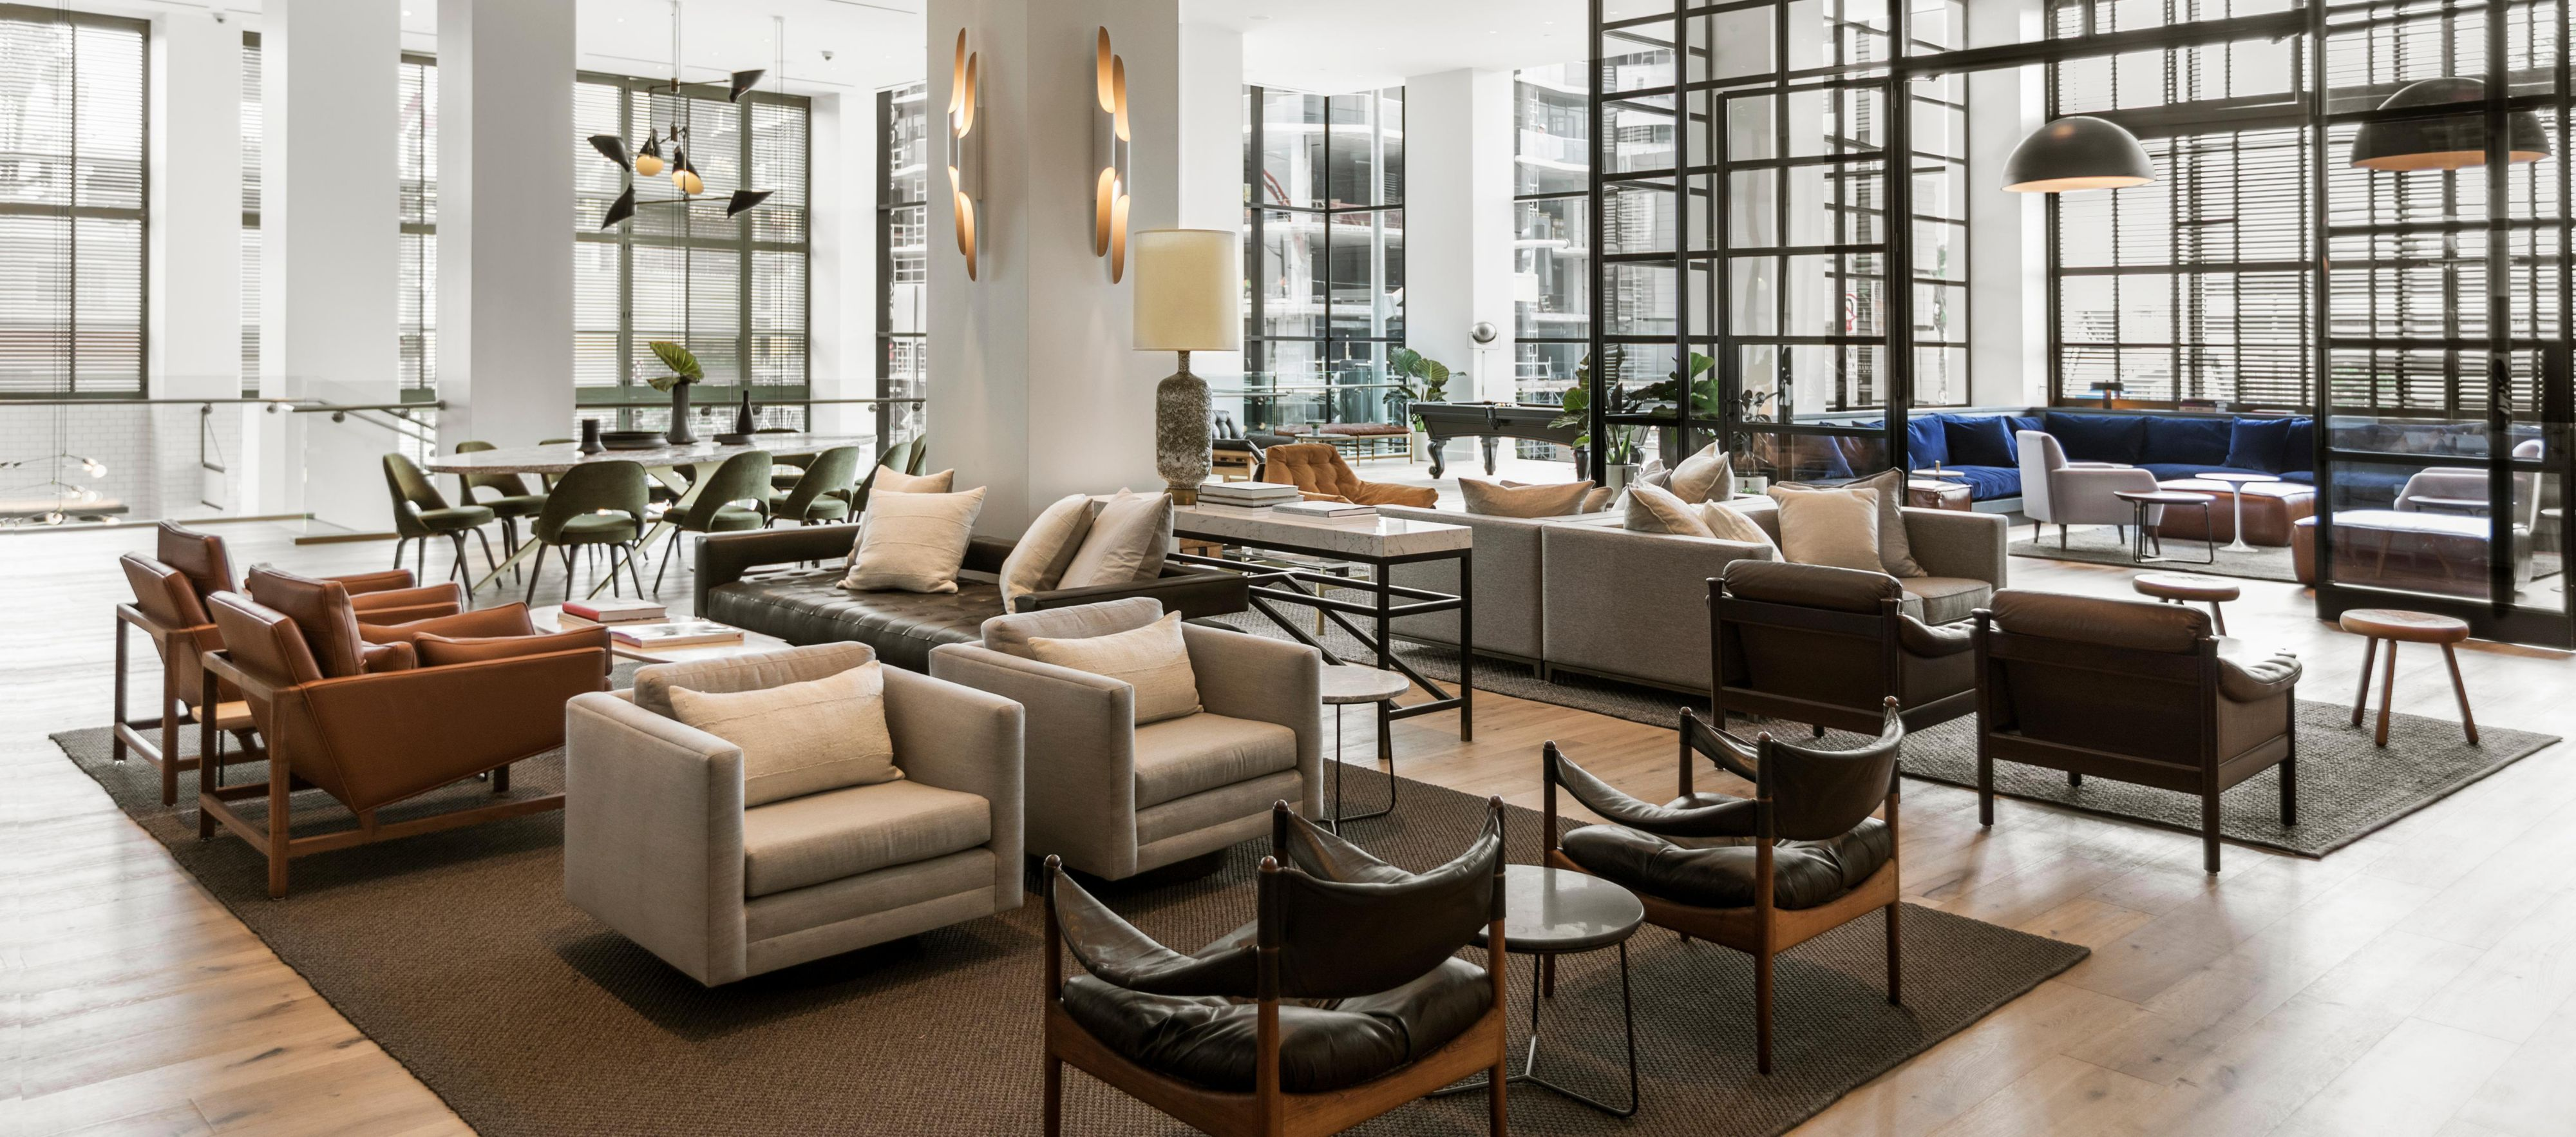 Kimpton Everly Hotel In Hollywood Los Angeles Kimpton Hotels